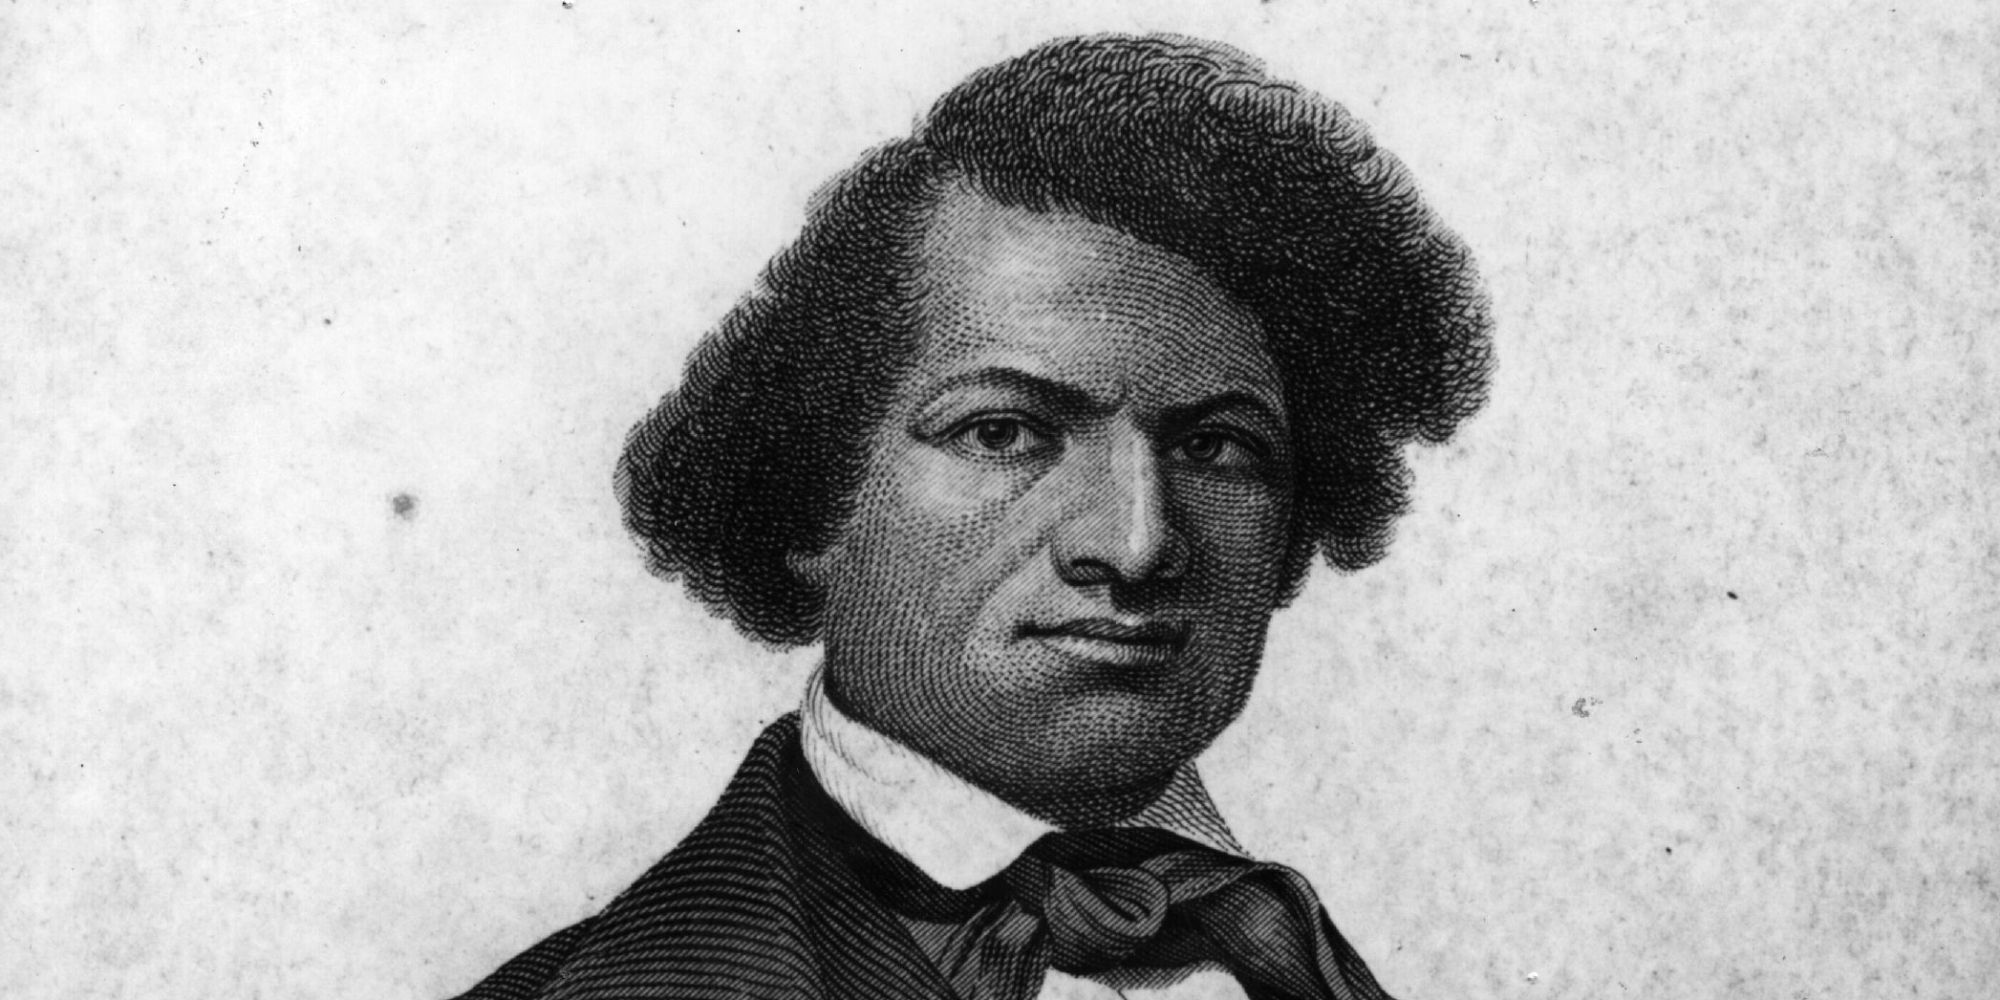 what the black man wants frederick douglass essay Ver vídeo visit biographycom to learn more about the life and times of frederick douglass,  frederick and anna douglass had five  to vote as a black man.